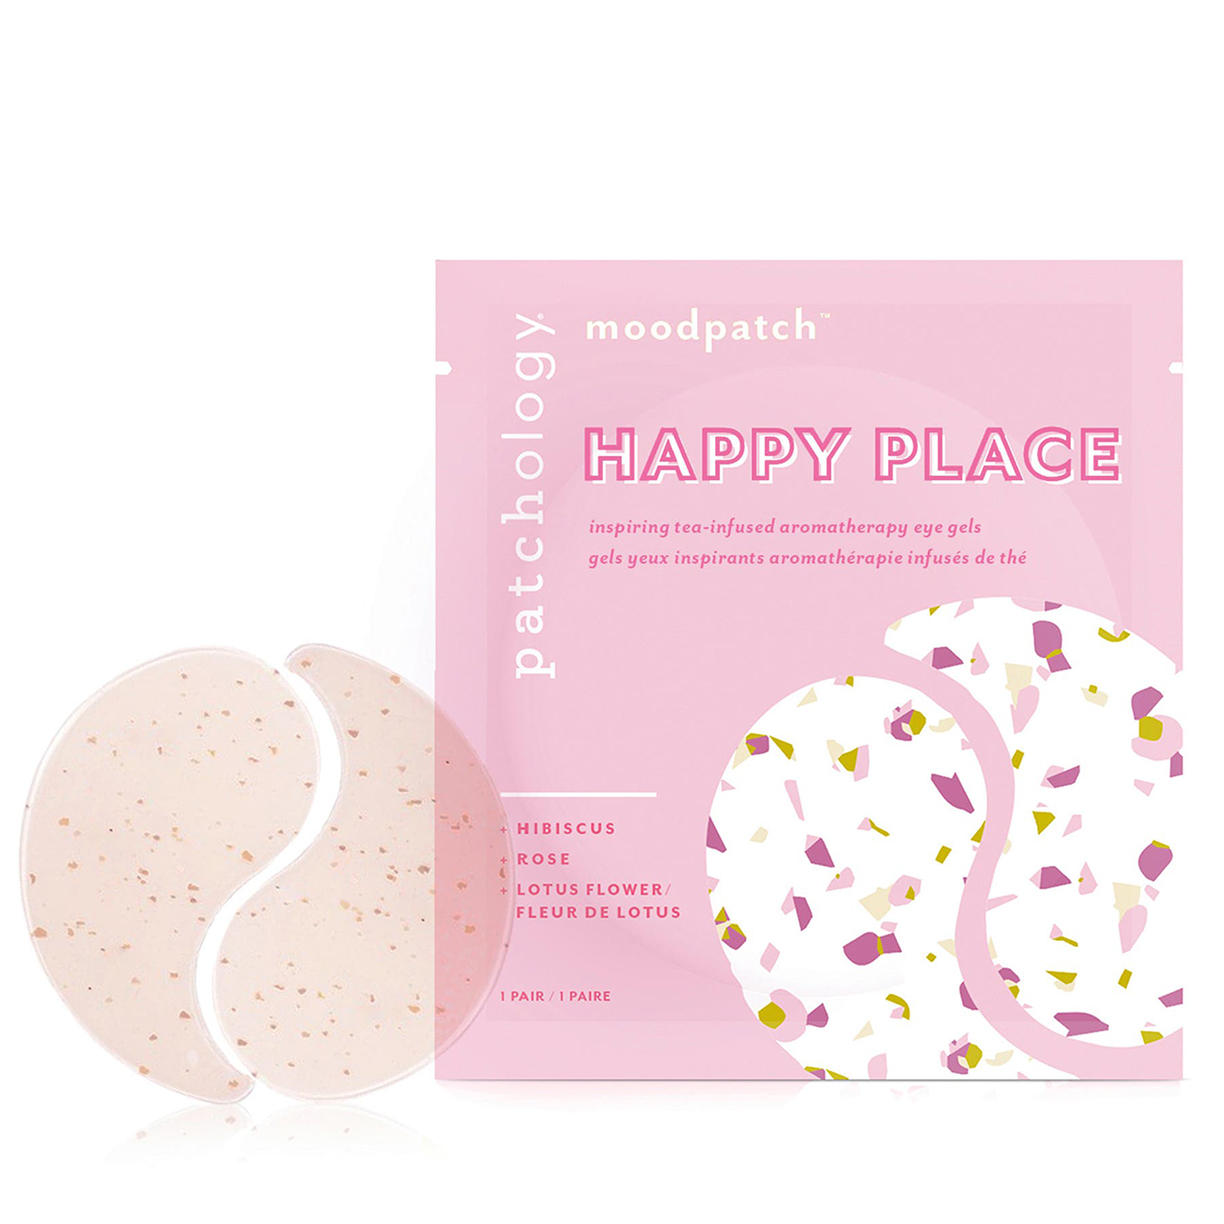 Face and Eye Masks from Patchology & More Starting at $10